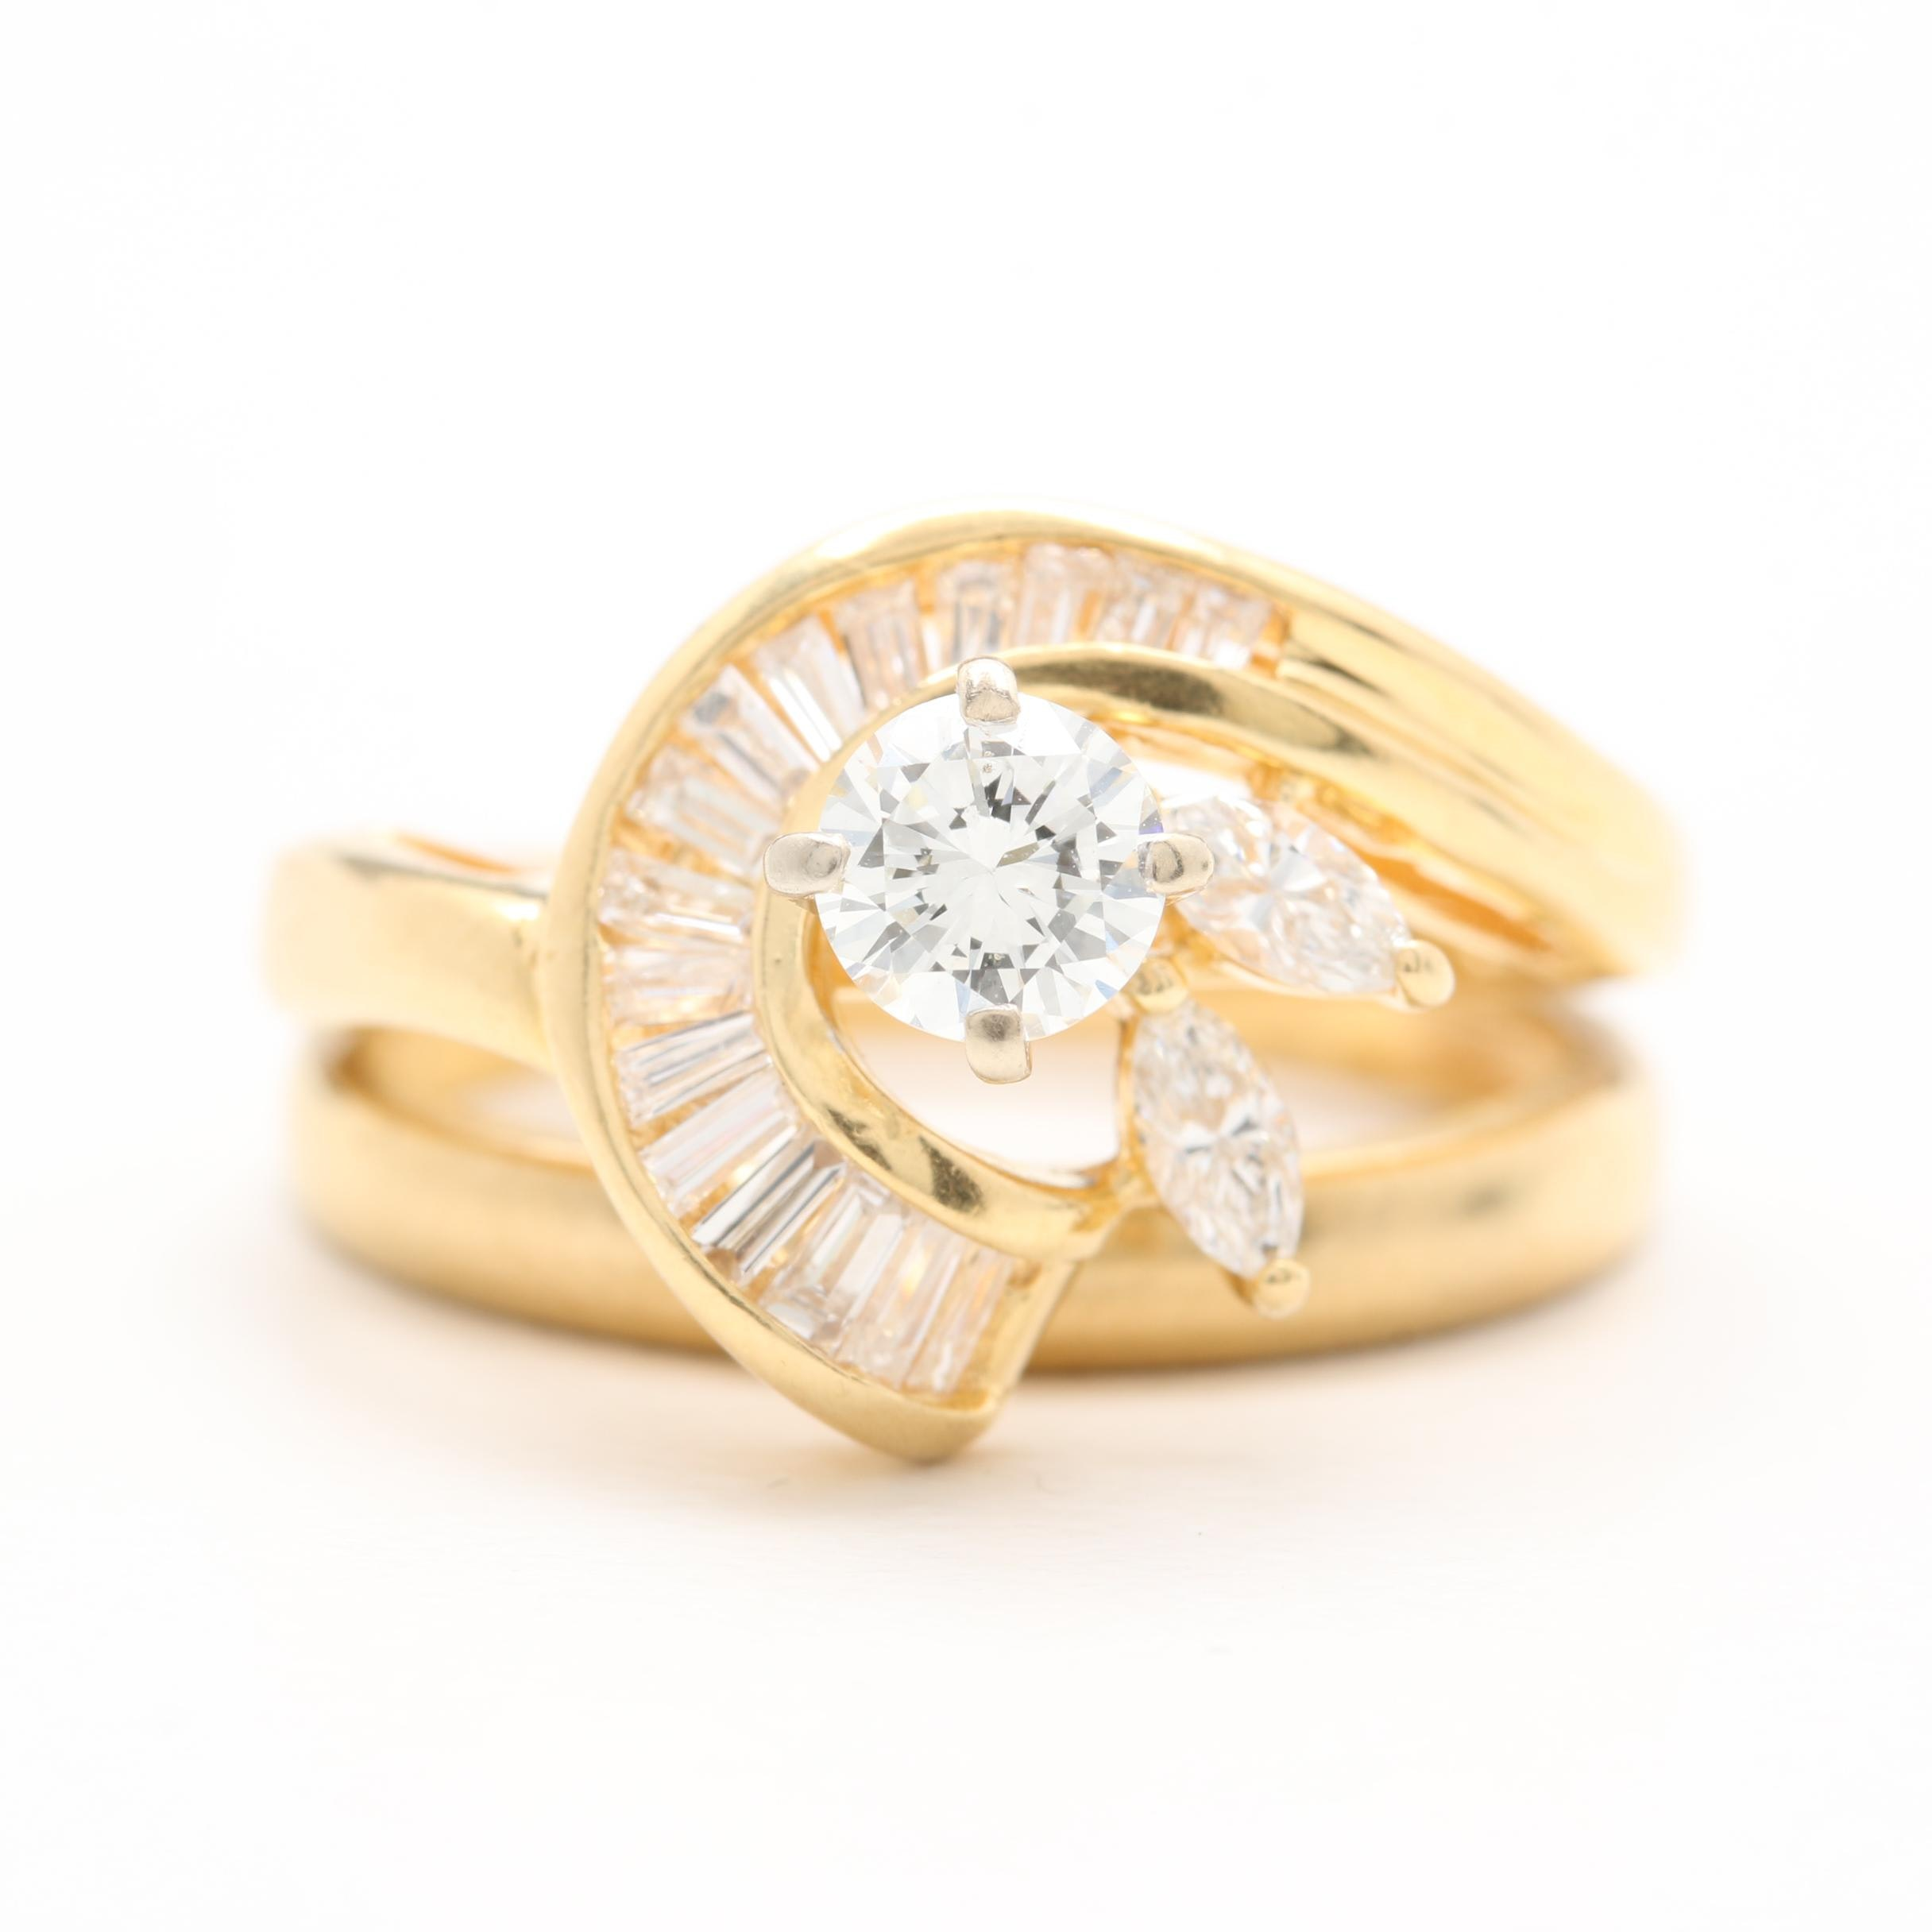 18K Yellow Gold Diamond Ring Set